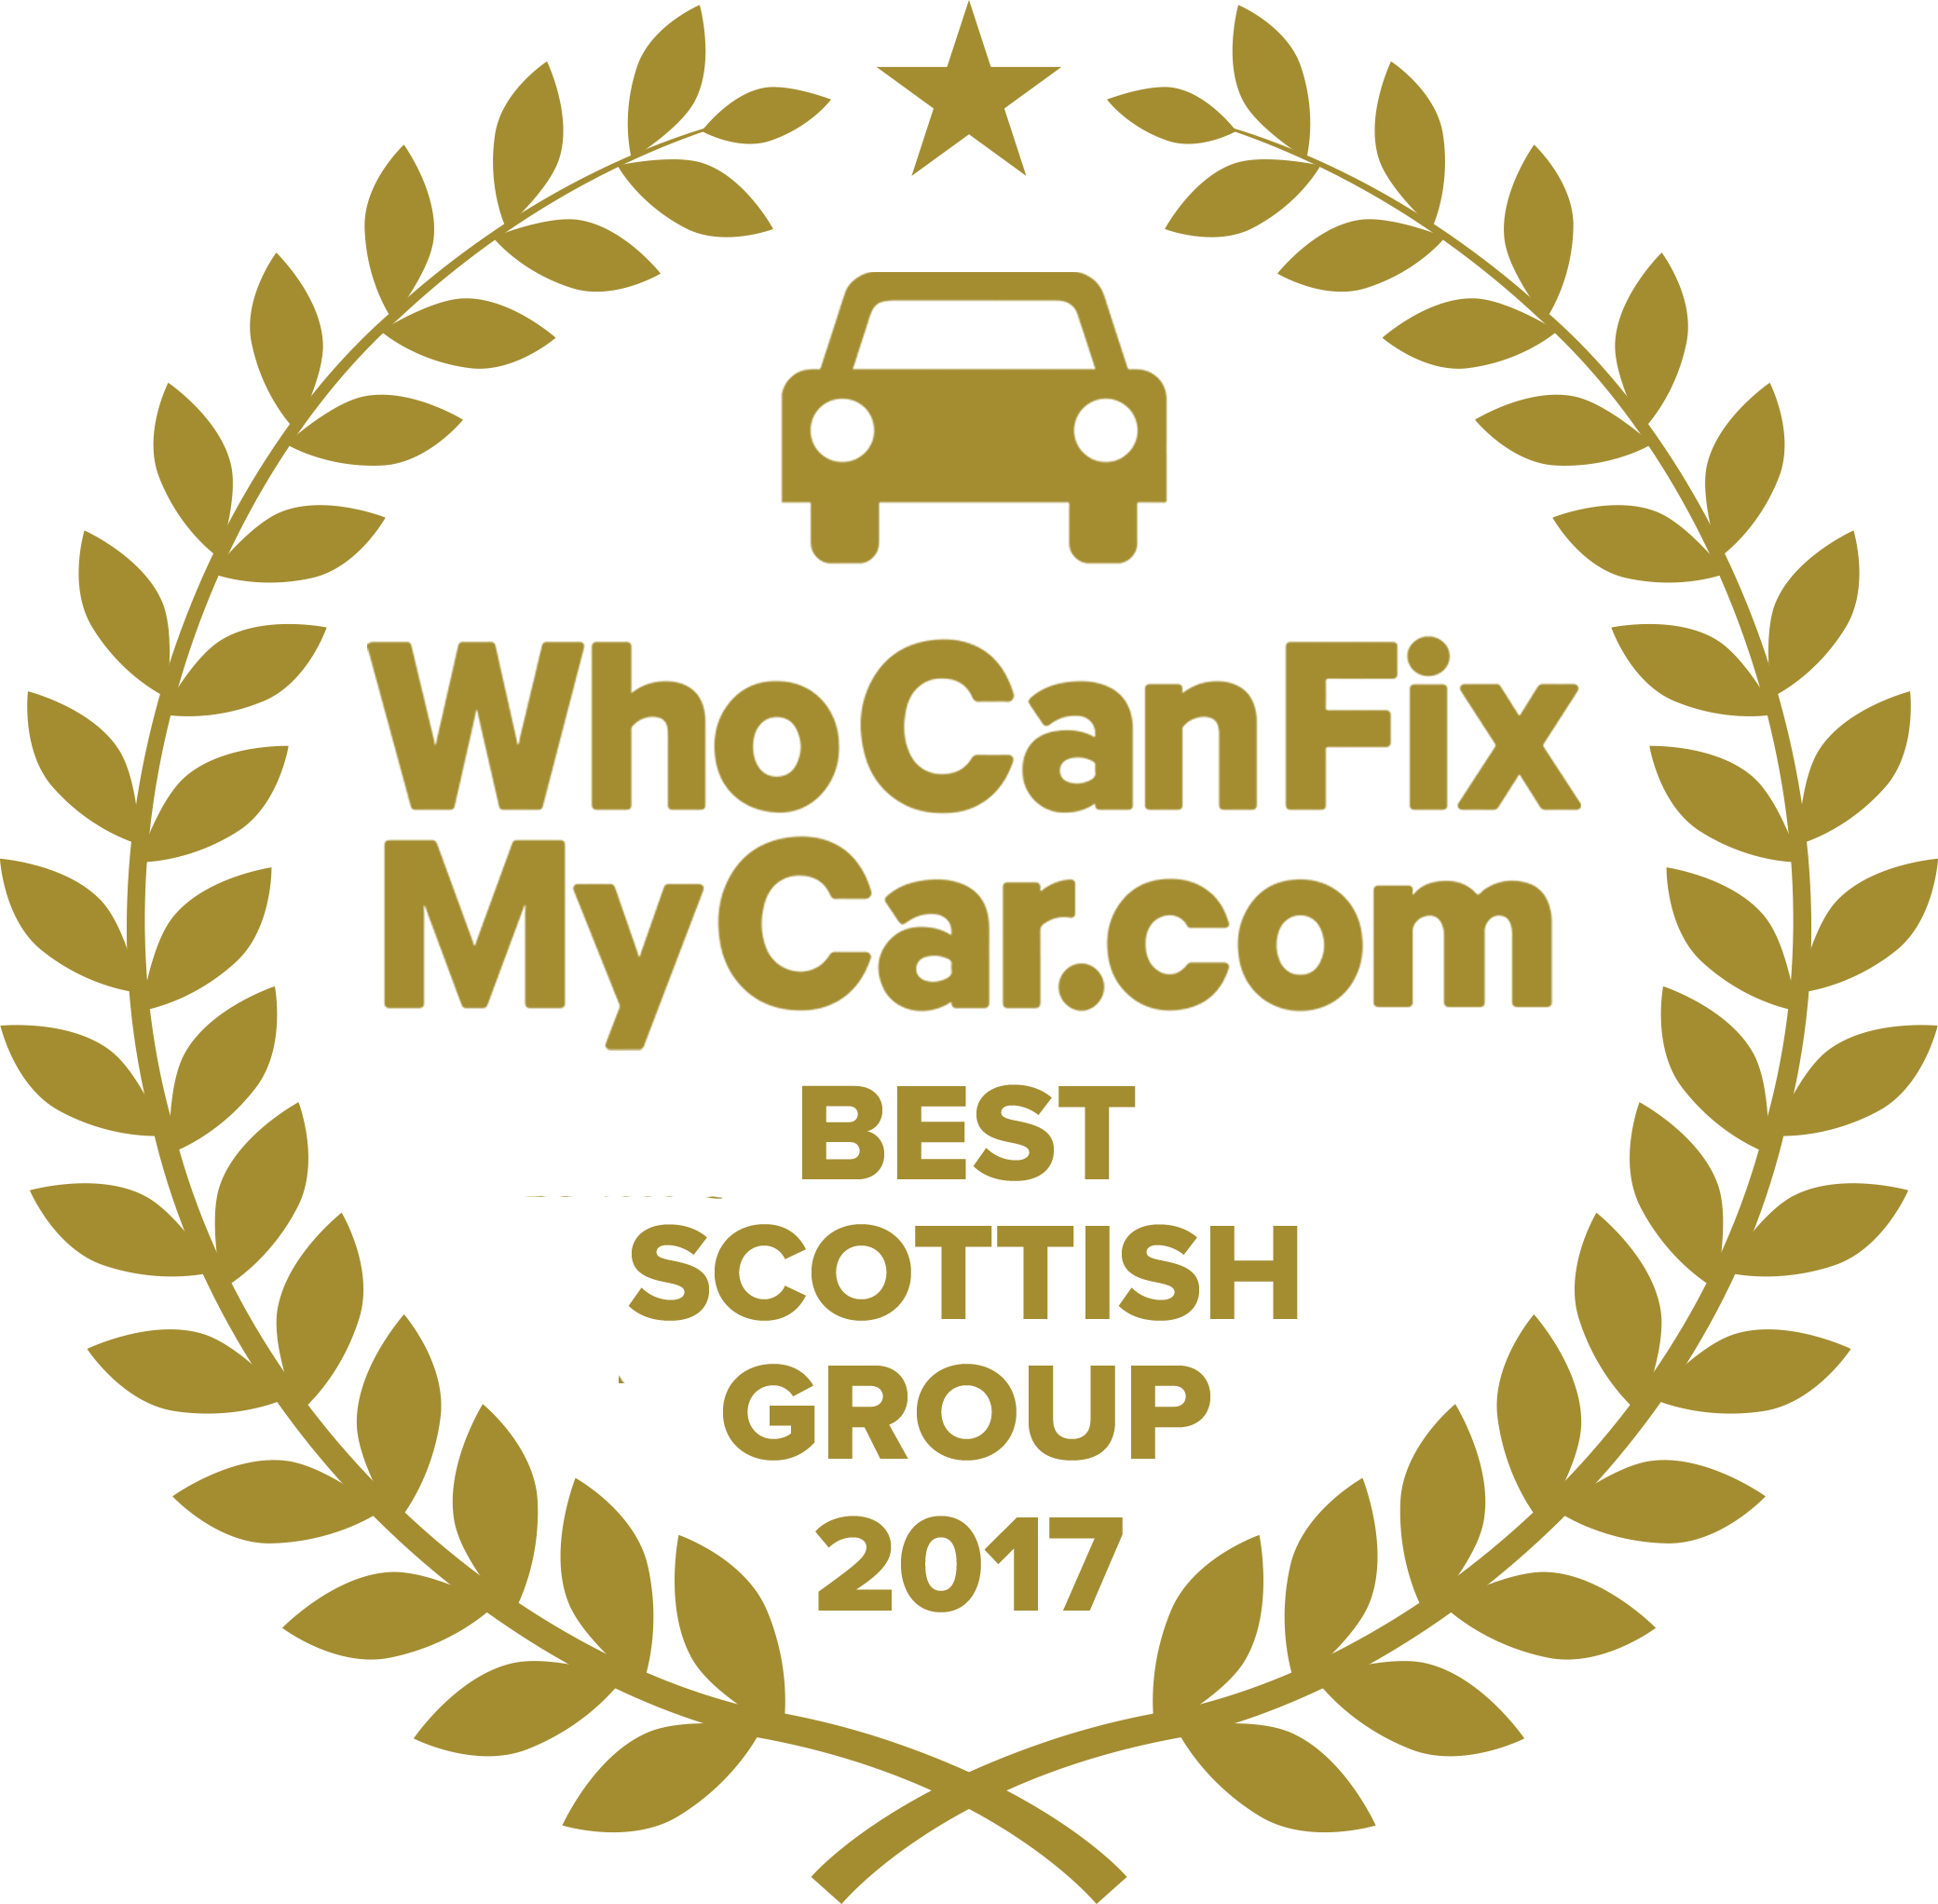 Best Scottish Group - 2017